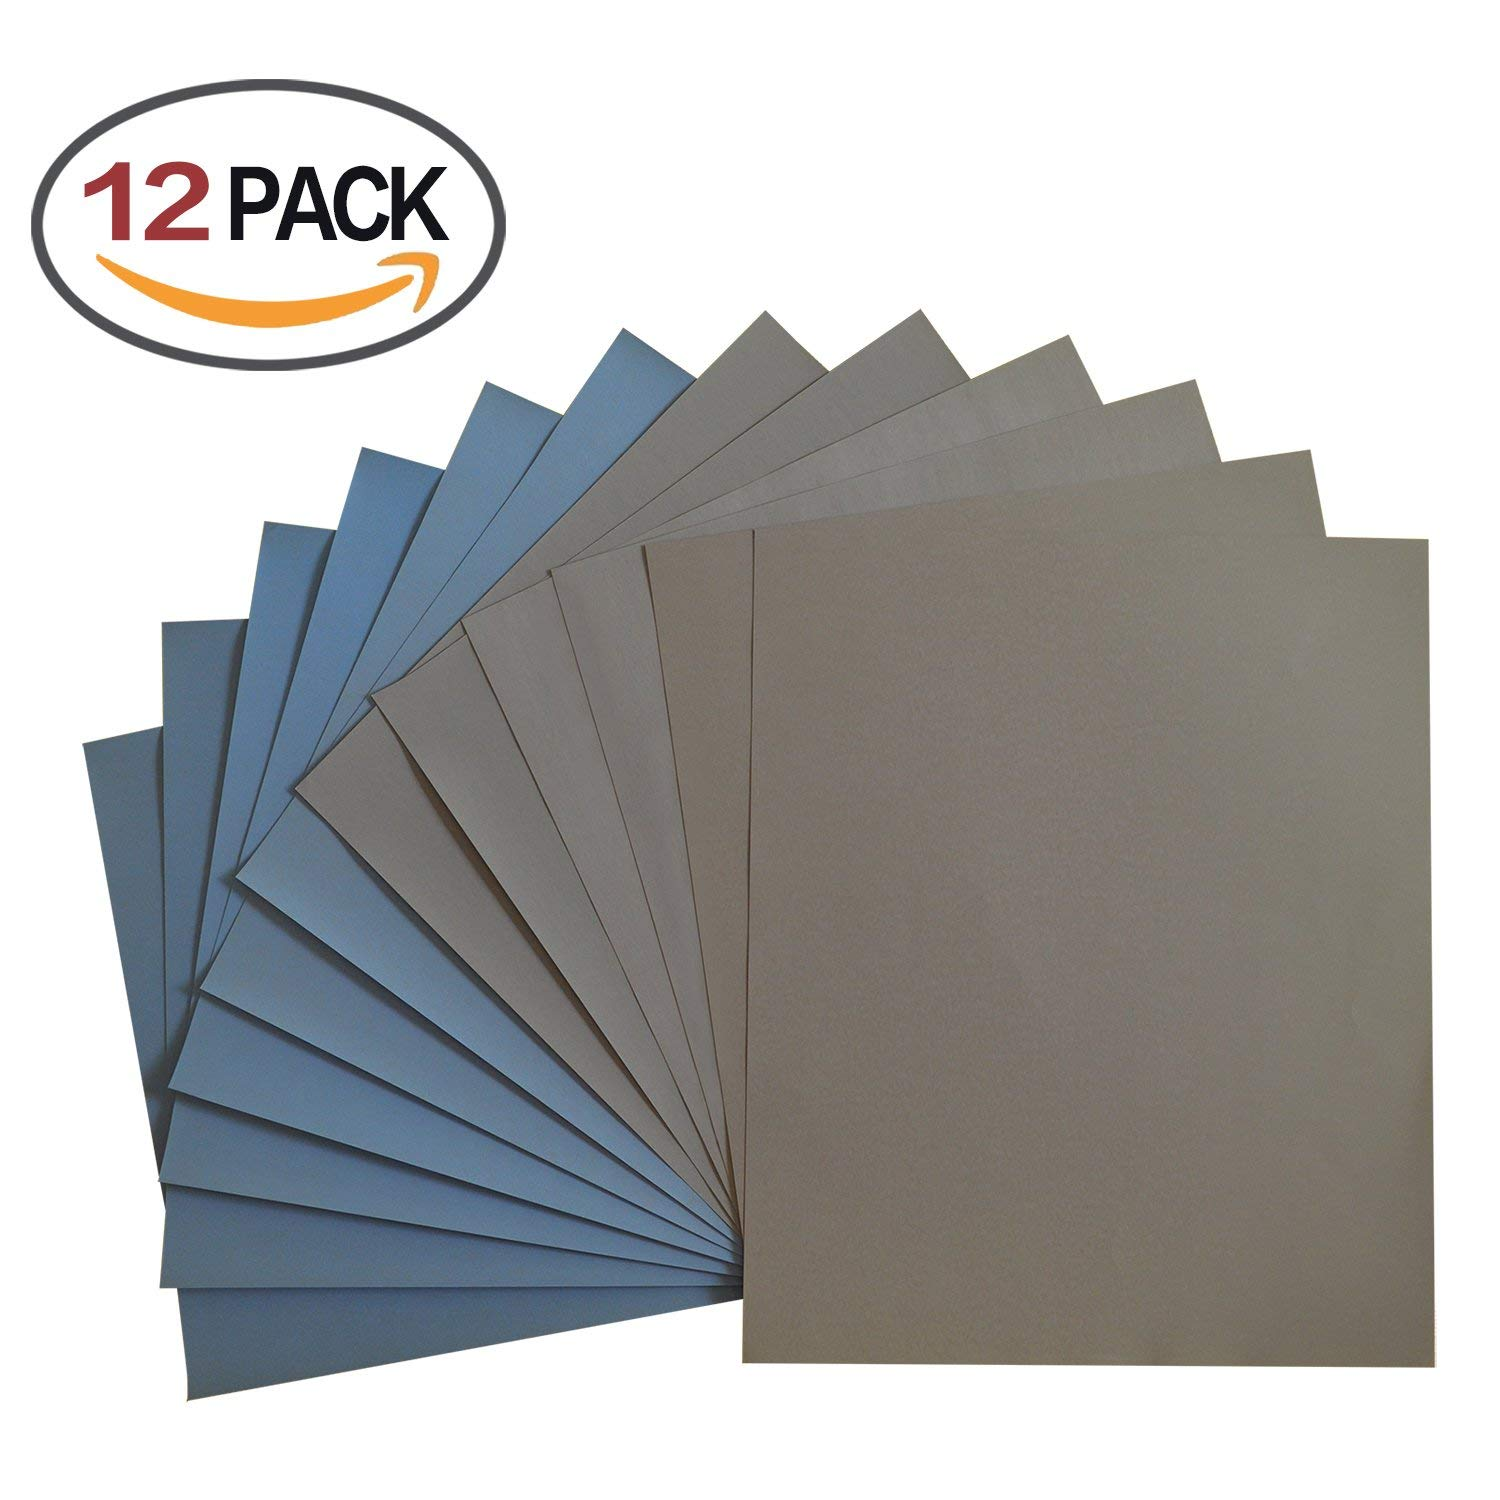 HLZS-Grit 1500 2000 2500 3000 5000 7000 High Precision Polishing Sanding Wet/dry Abrasive Sandpaper Sheets - Germany, Pack Of